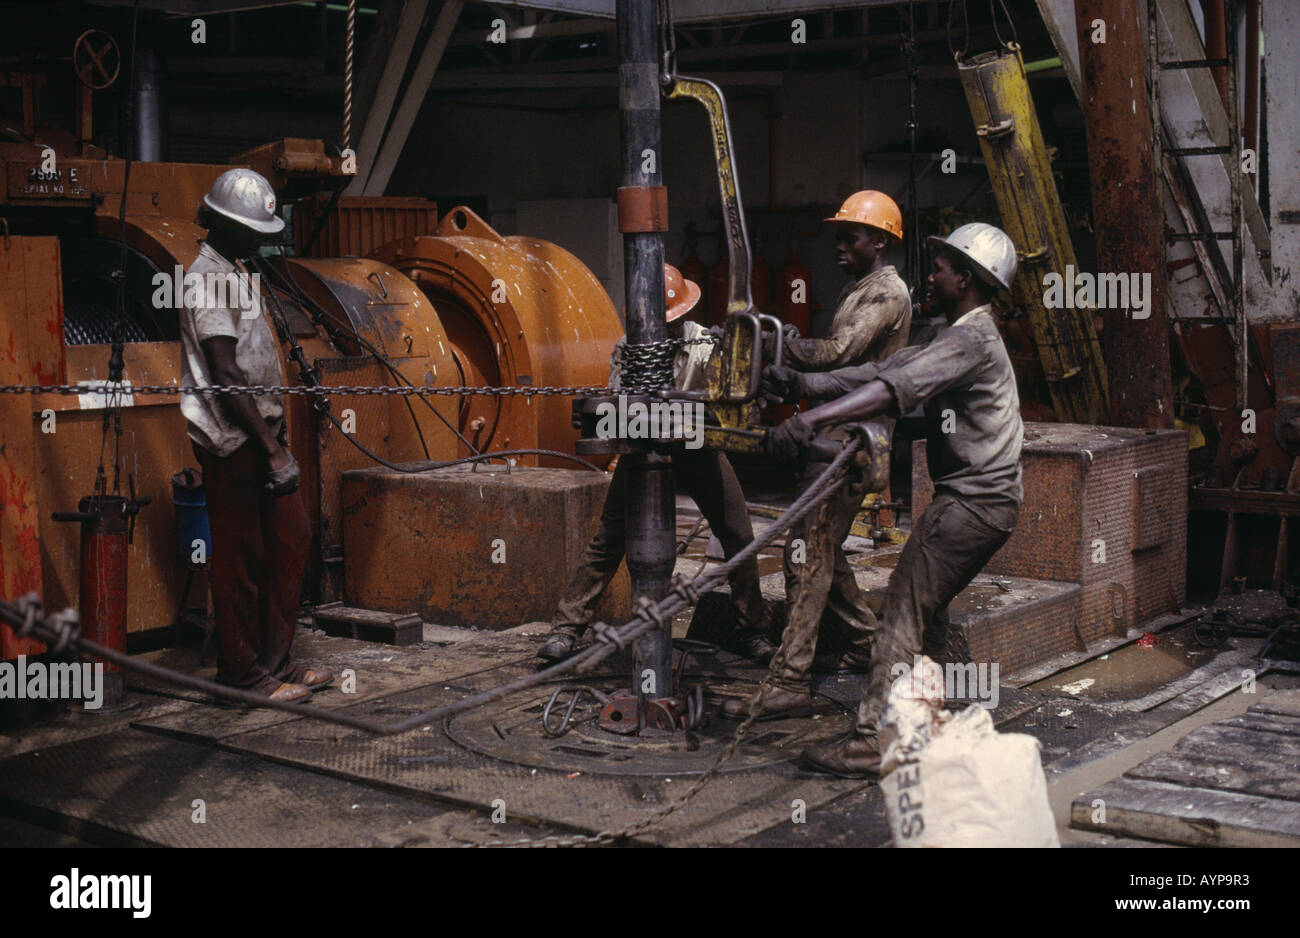 NIGERIA West Africa Rivers State Industry Workers on oil rig drilling platform - Stock Image